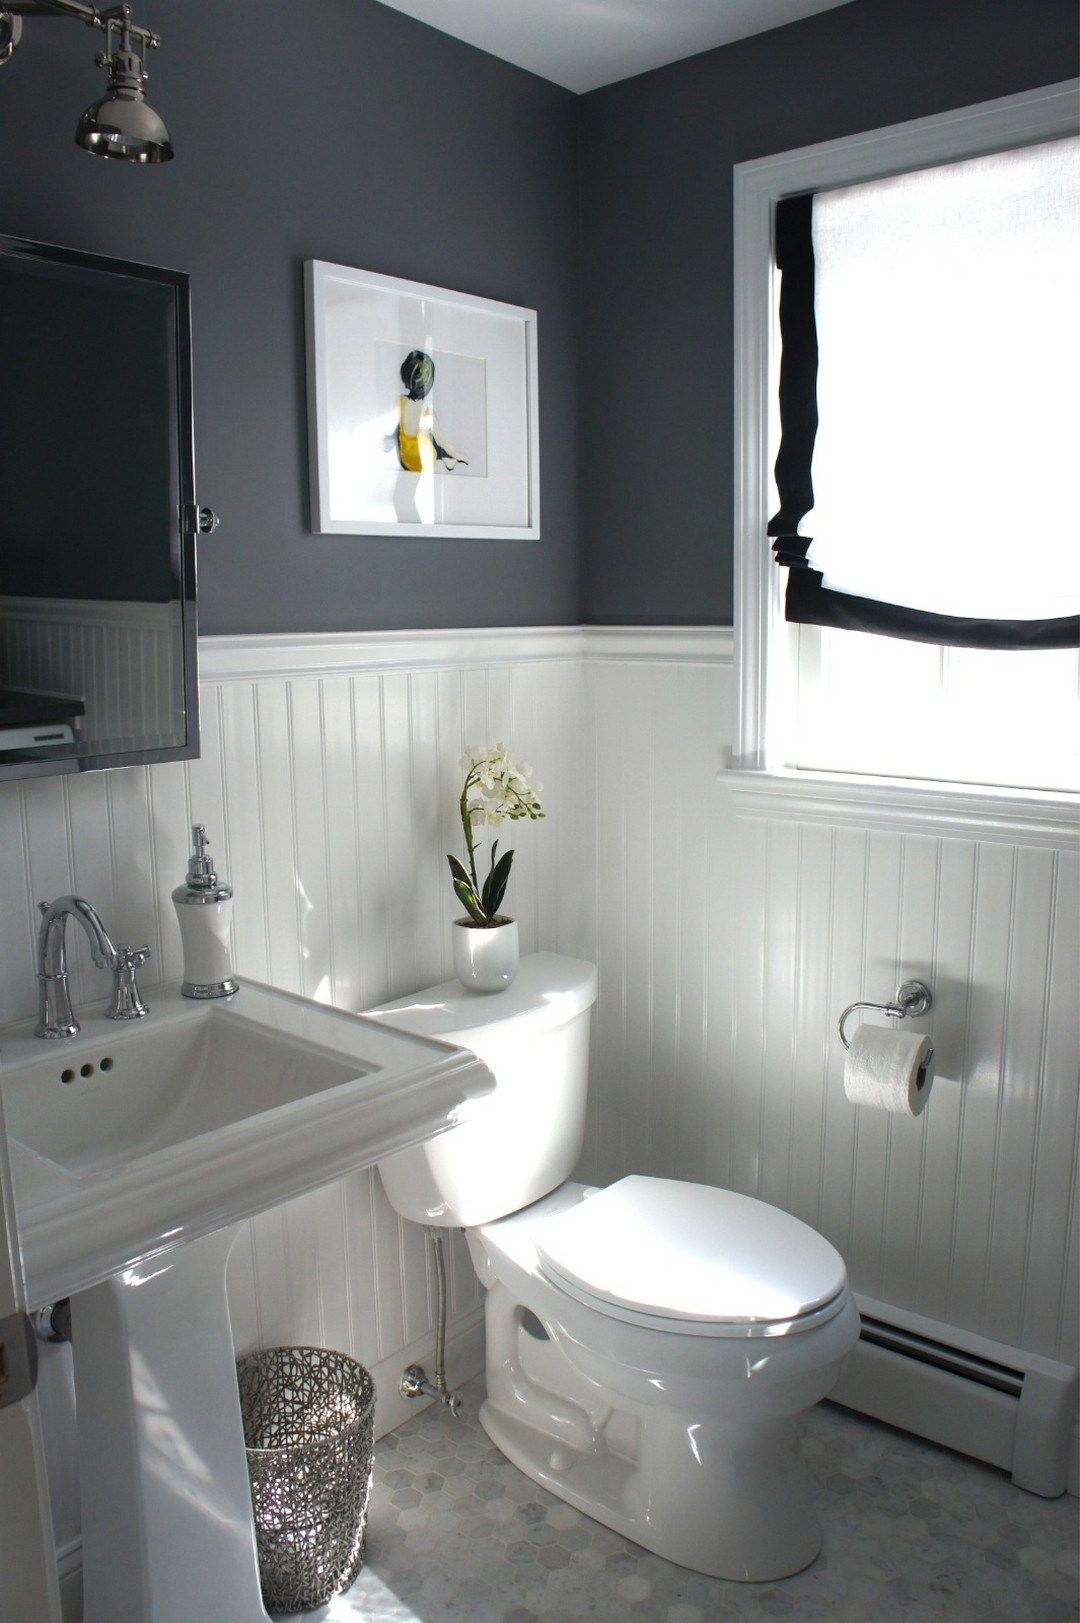 99 small master bathroom makeover ideas on a budget 48 for Bathroom makeover ideas